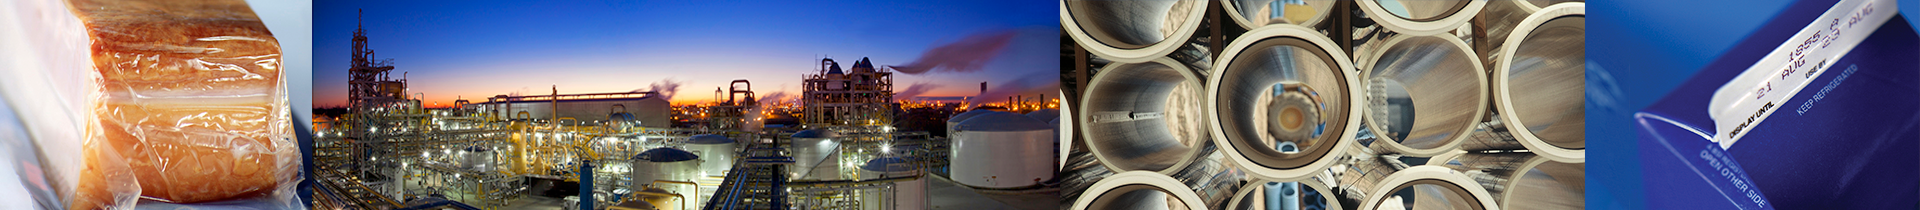 Westlake Chemical Corporation Announces Fourth Quarter and Full Year 2015 Earnings